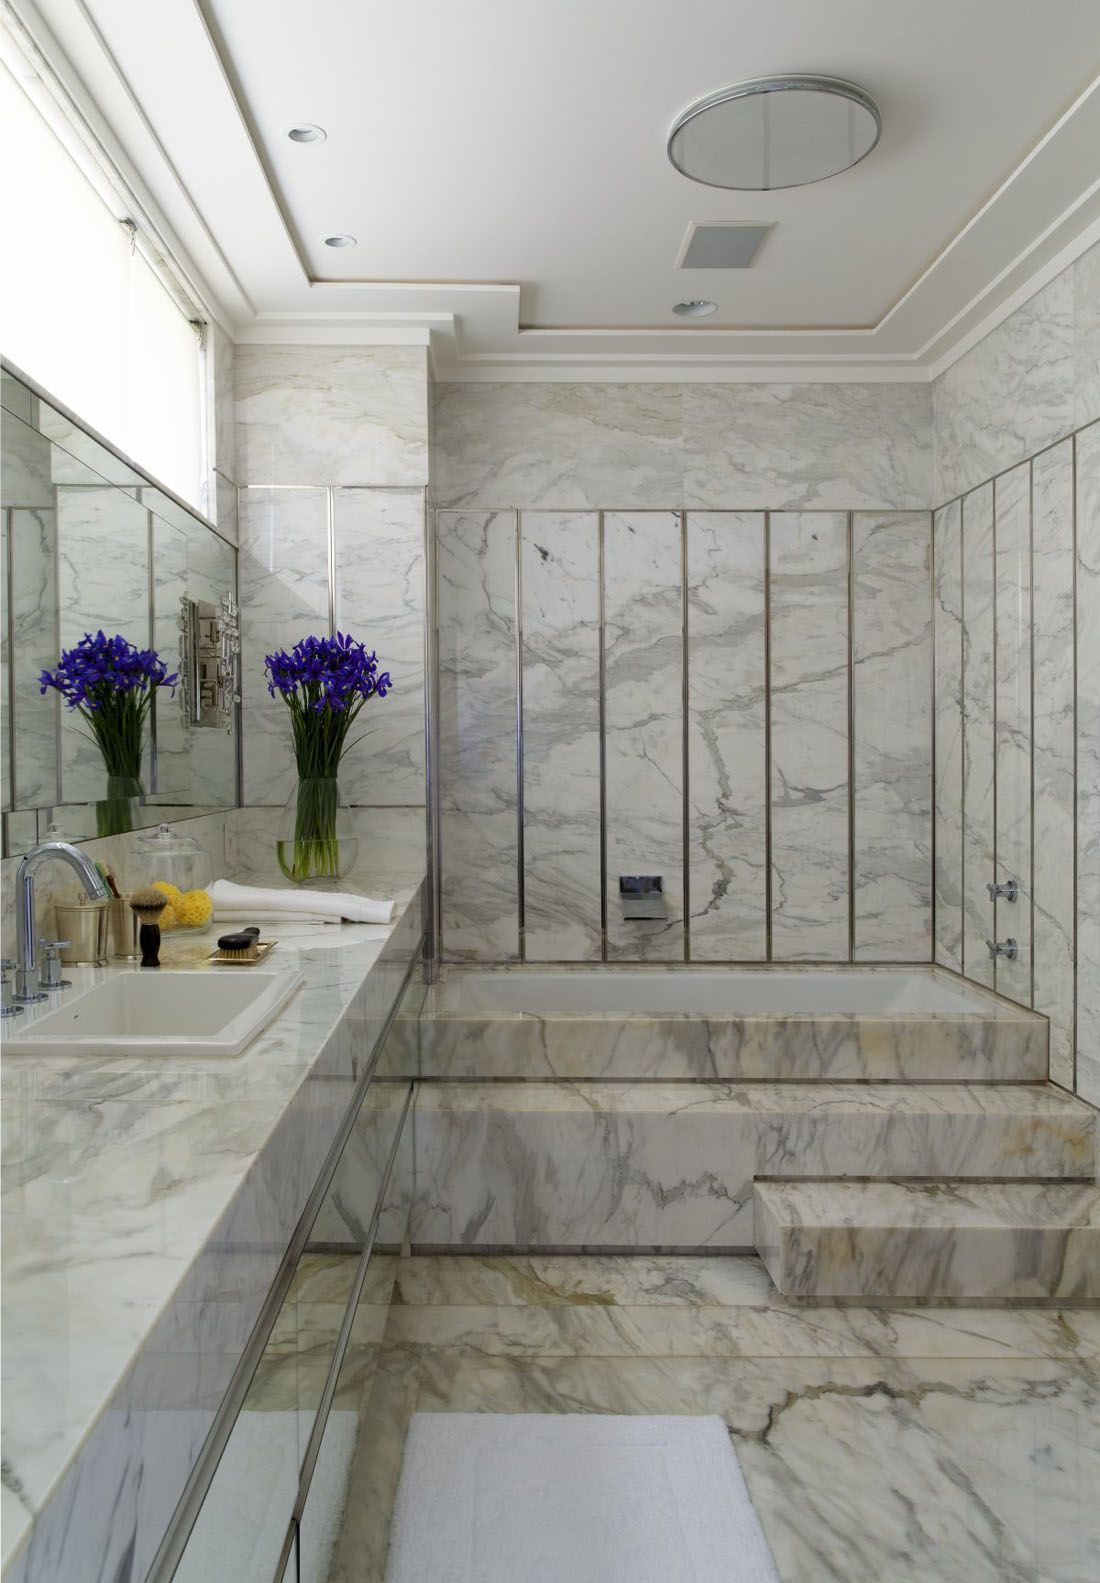 Marmorbad Classic Marble Bathroom Design With A Bathtub Marble Floor | Marmorbad, Marmorboden, Luxusbadezimmer